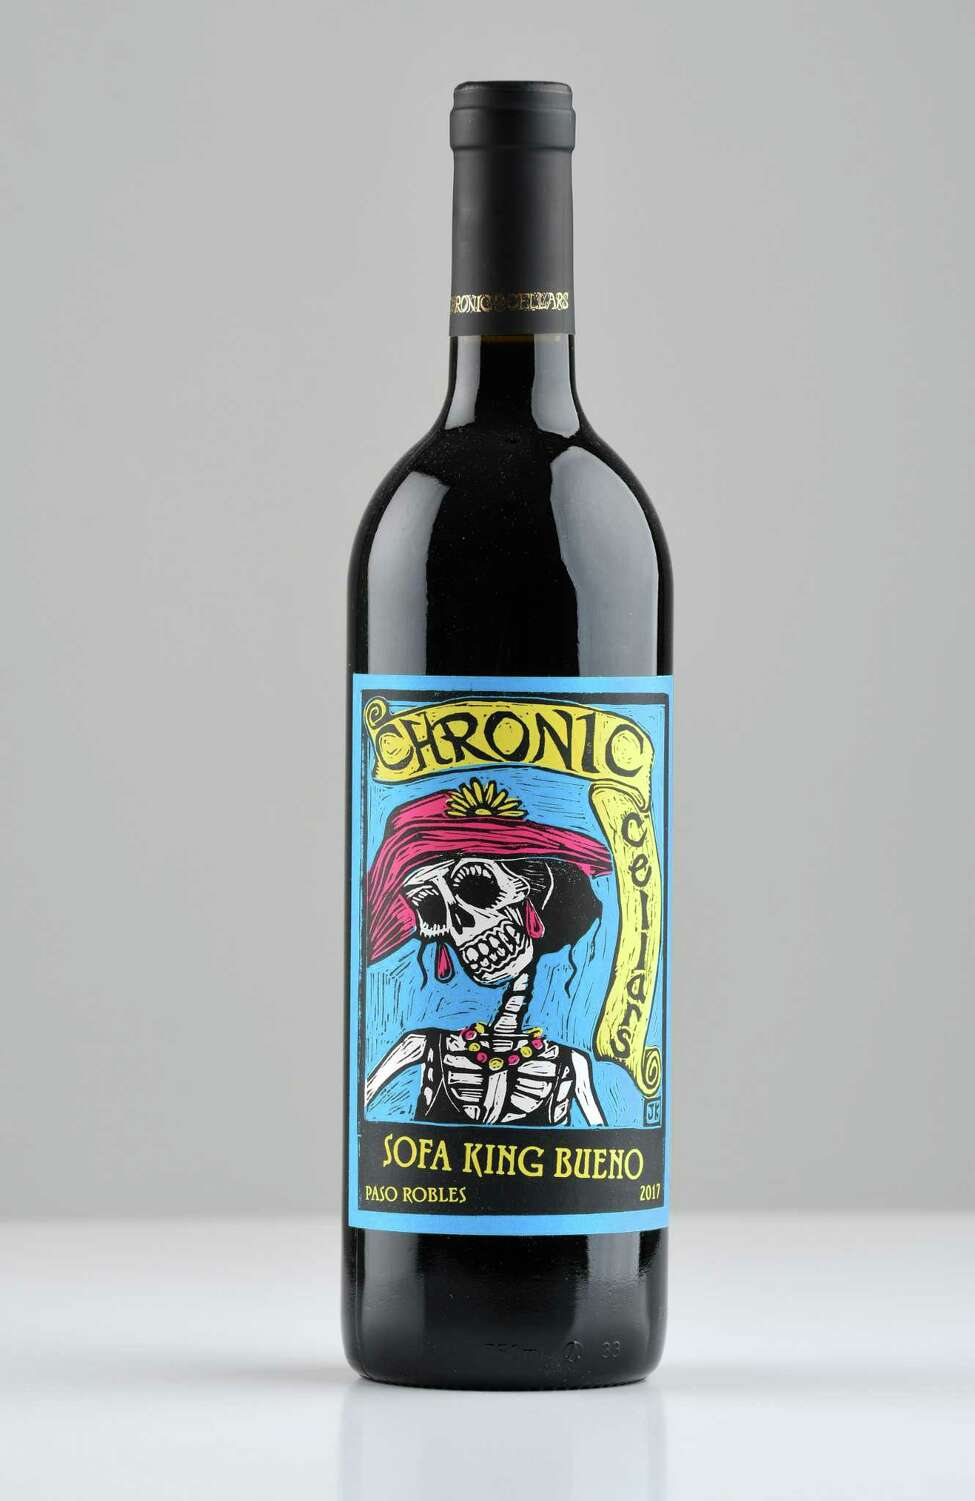 Chronic cellars sofa king Bueno on Friday, Feb. 7, 2020, at the Times Union in Colonie, N.Y. (Will Waldron/Times Union)